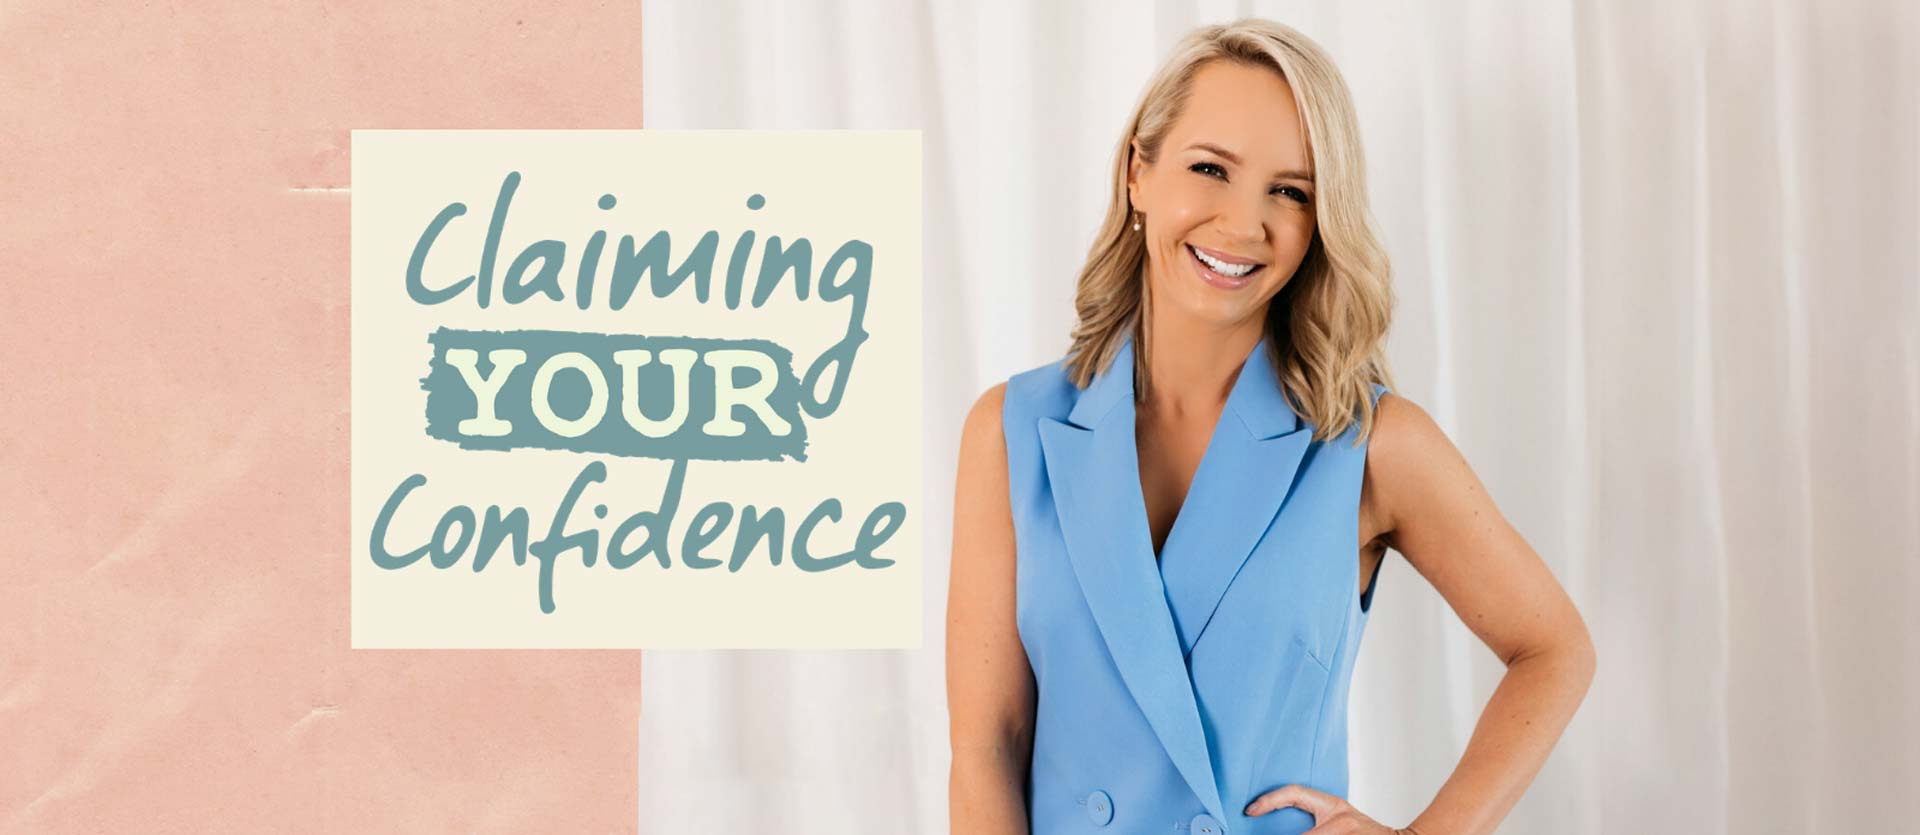 Claiming your Confidence with Katrina Blowers